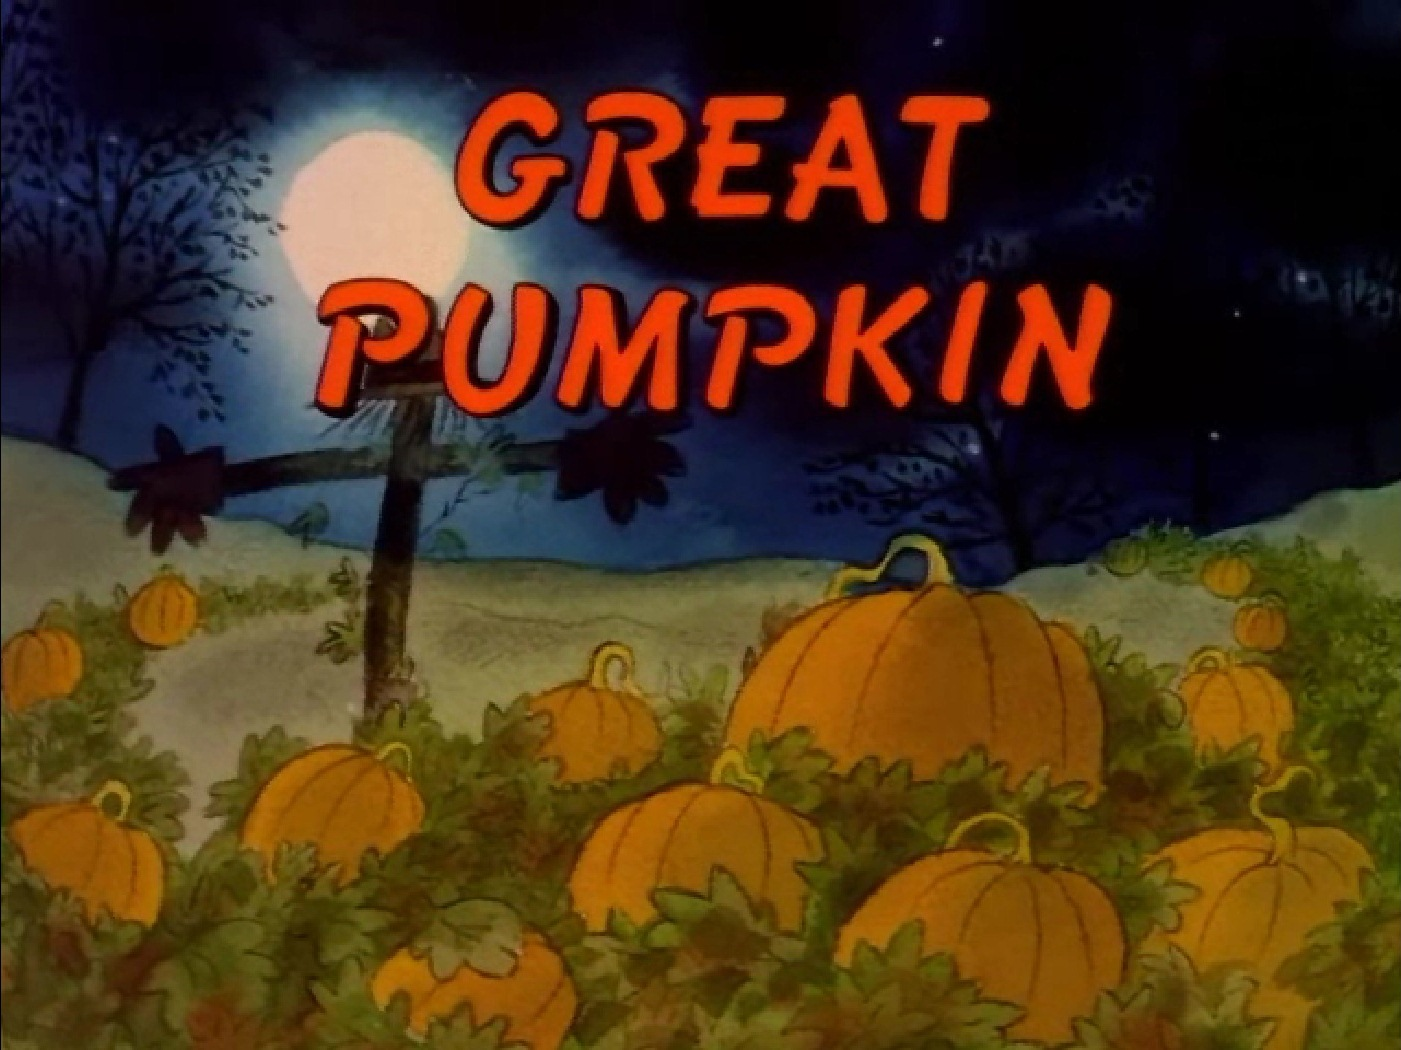 the charlie brown and snoopy show great pumpkin